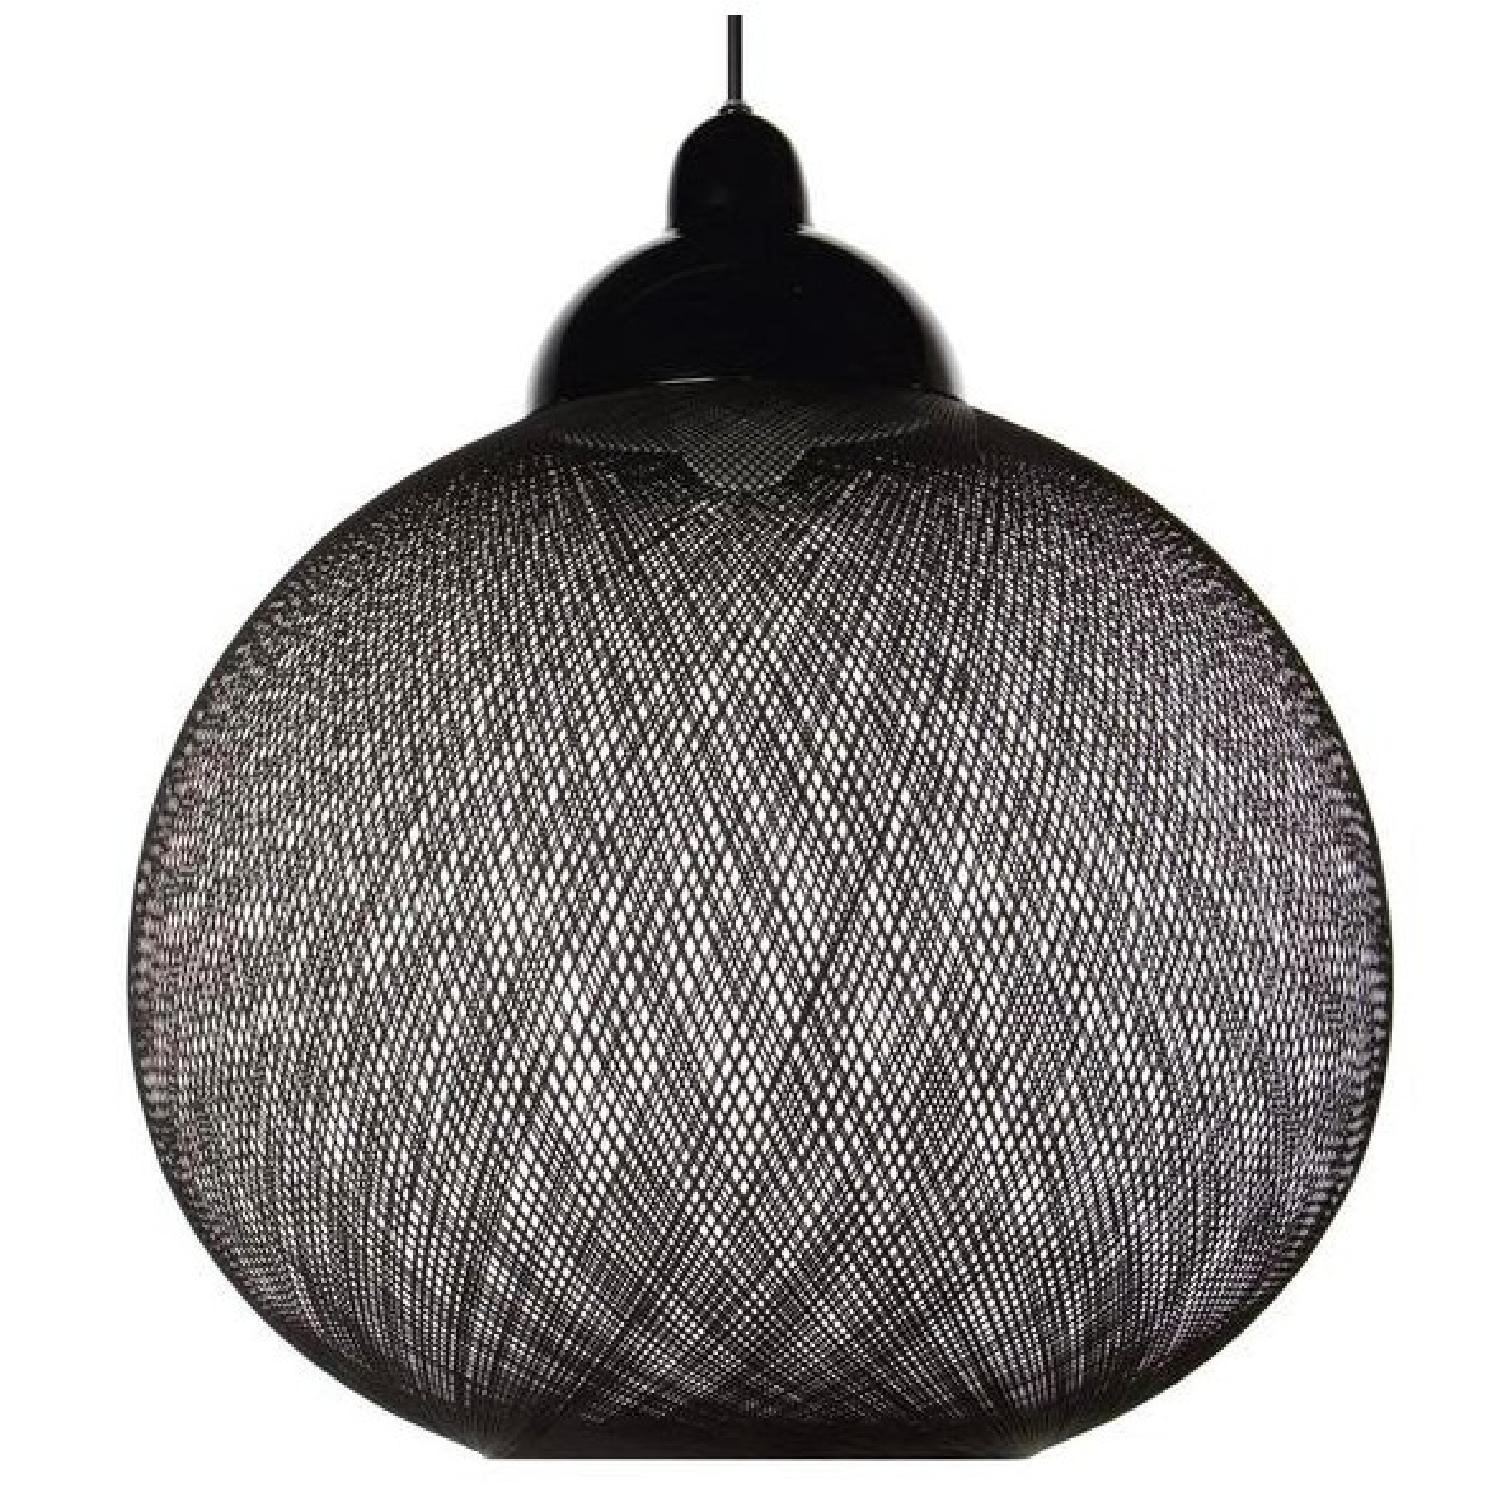 Moooi Non Random Pendant Light